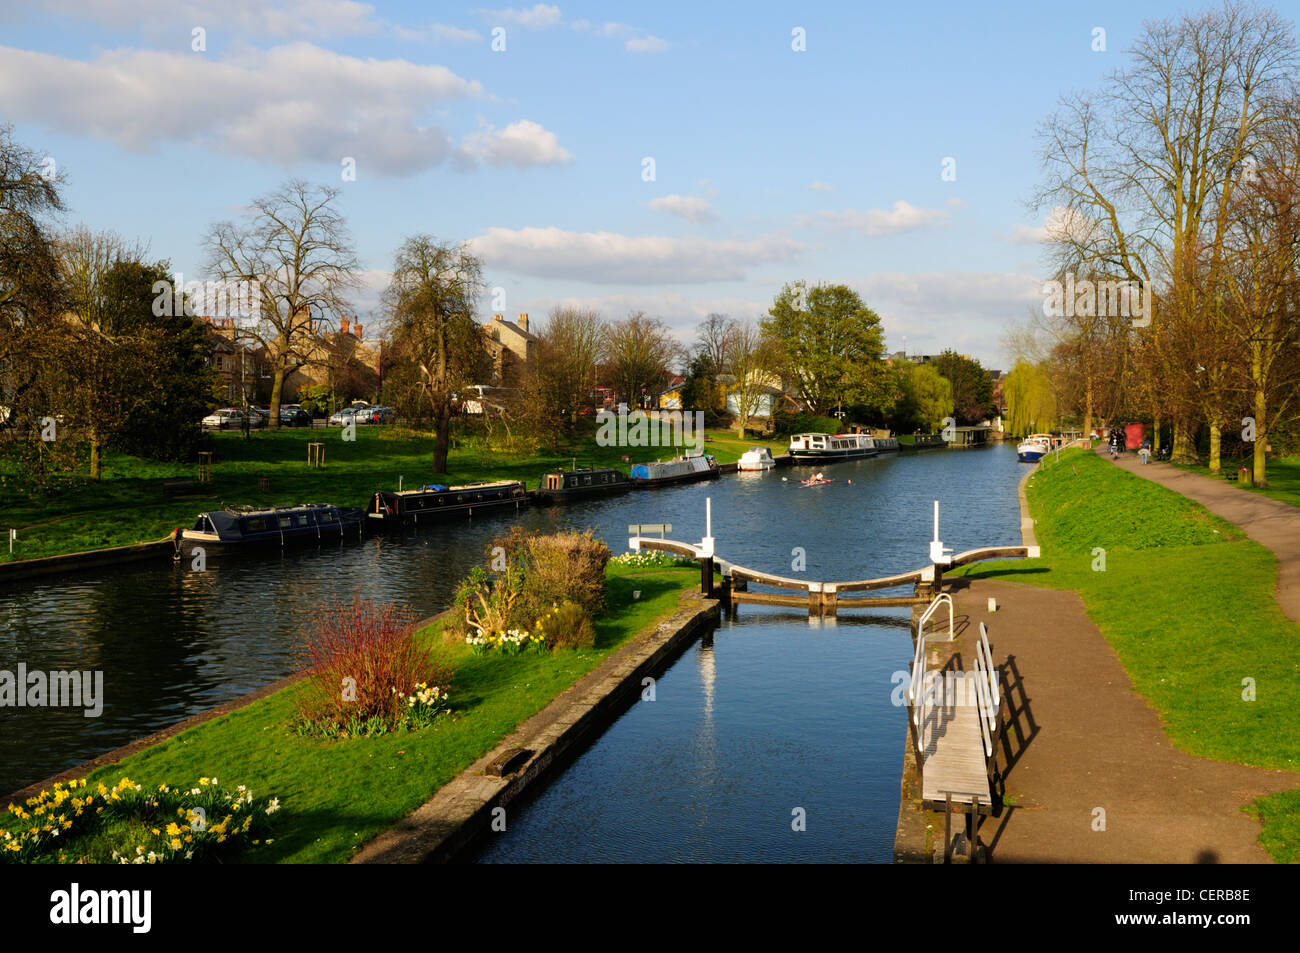 Jesus Lock on the River Cam, the only lock on the river in Cambridge. - Stock Image